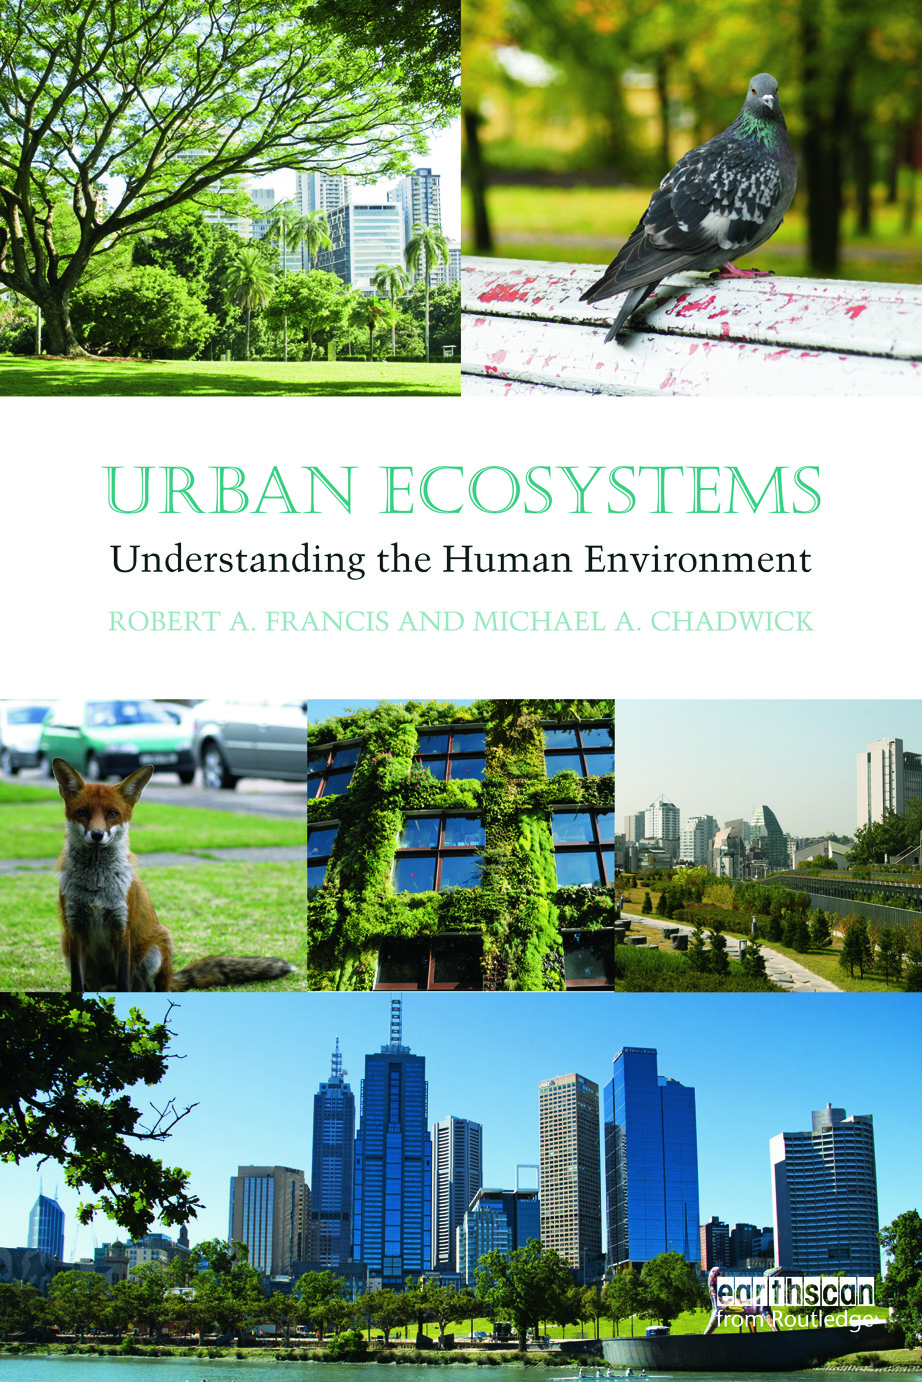 Urban Ecosystems: Understanding the Human Environment book cover